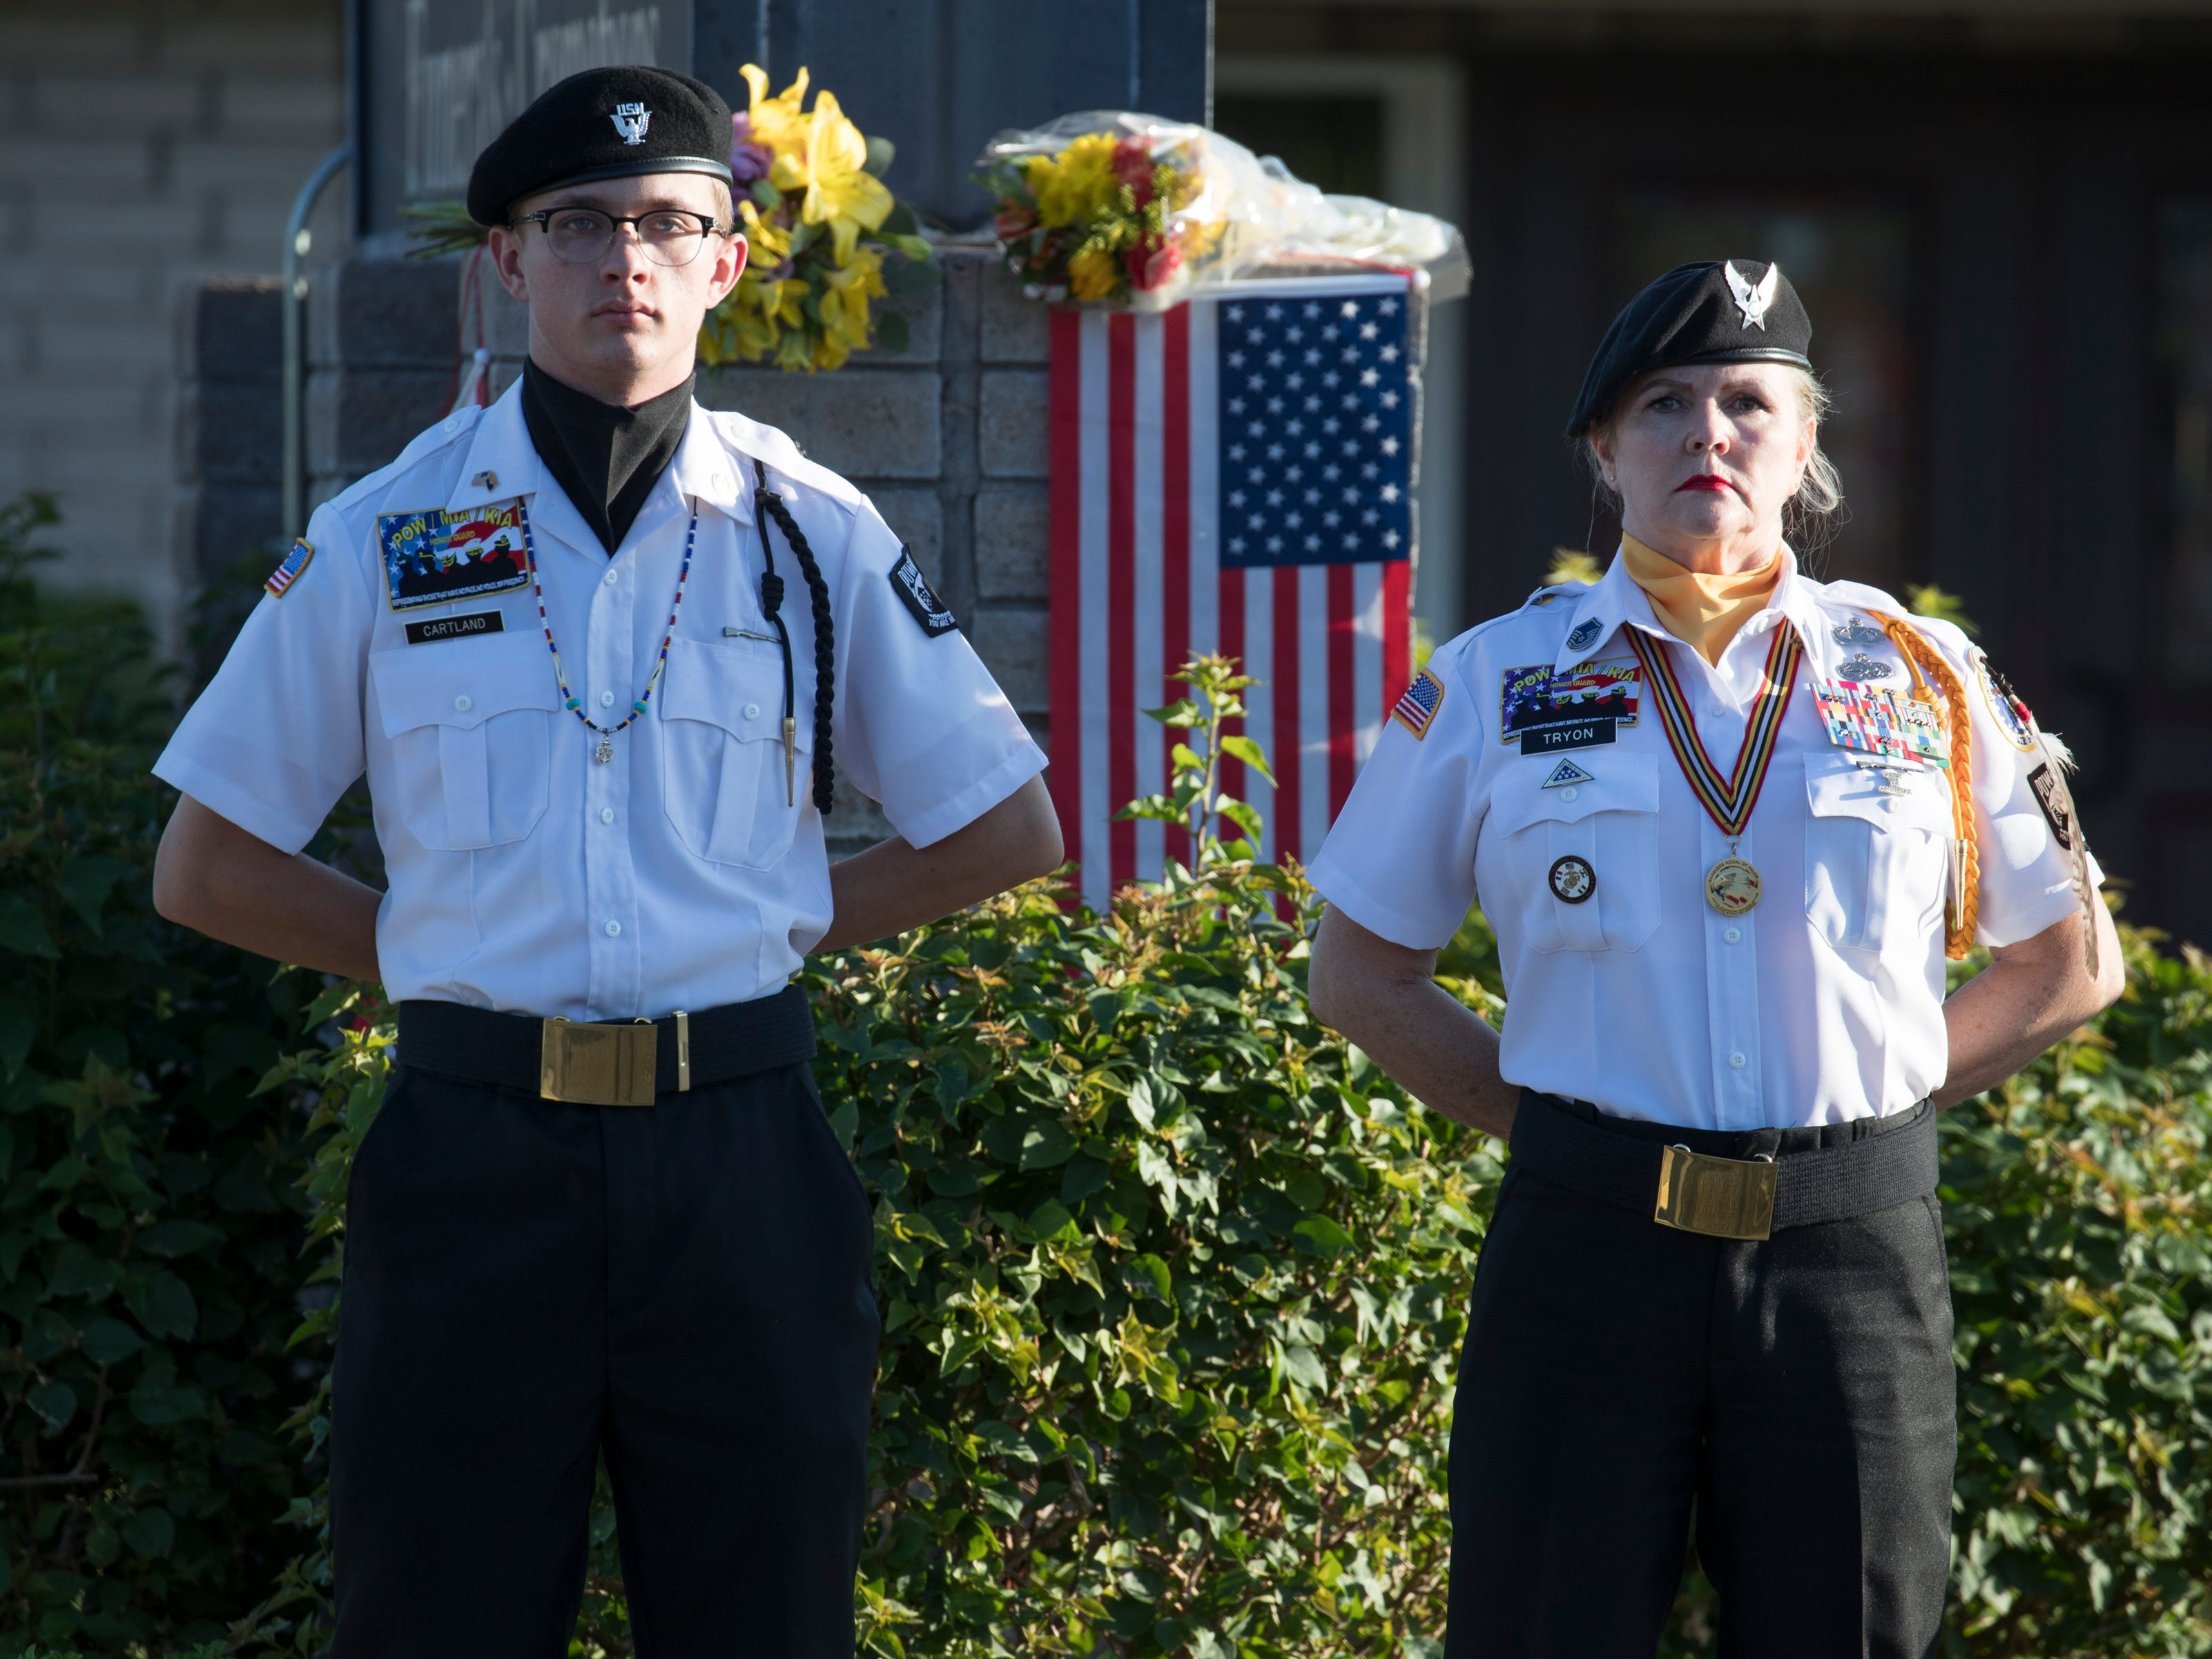 POW/MIA/KIA Honor Guard members Darlene Tryon (right) and Aaron Cartland stand watch at a makeshift memorial at the A. L. Moore Grimshaw Mortuary, Aug. 26, 2018, at 710 W. Bethany Home Road in Phoenix.